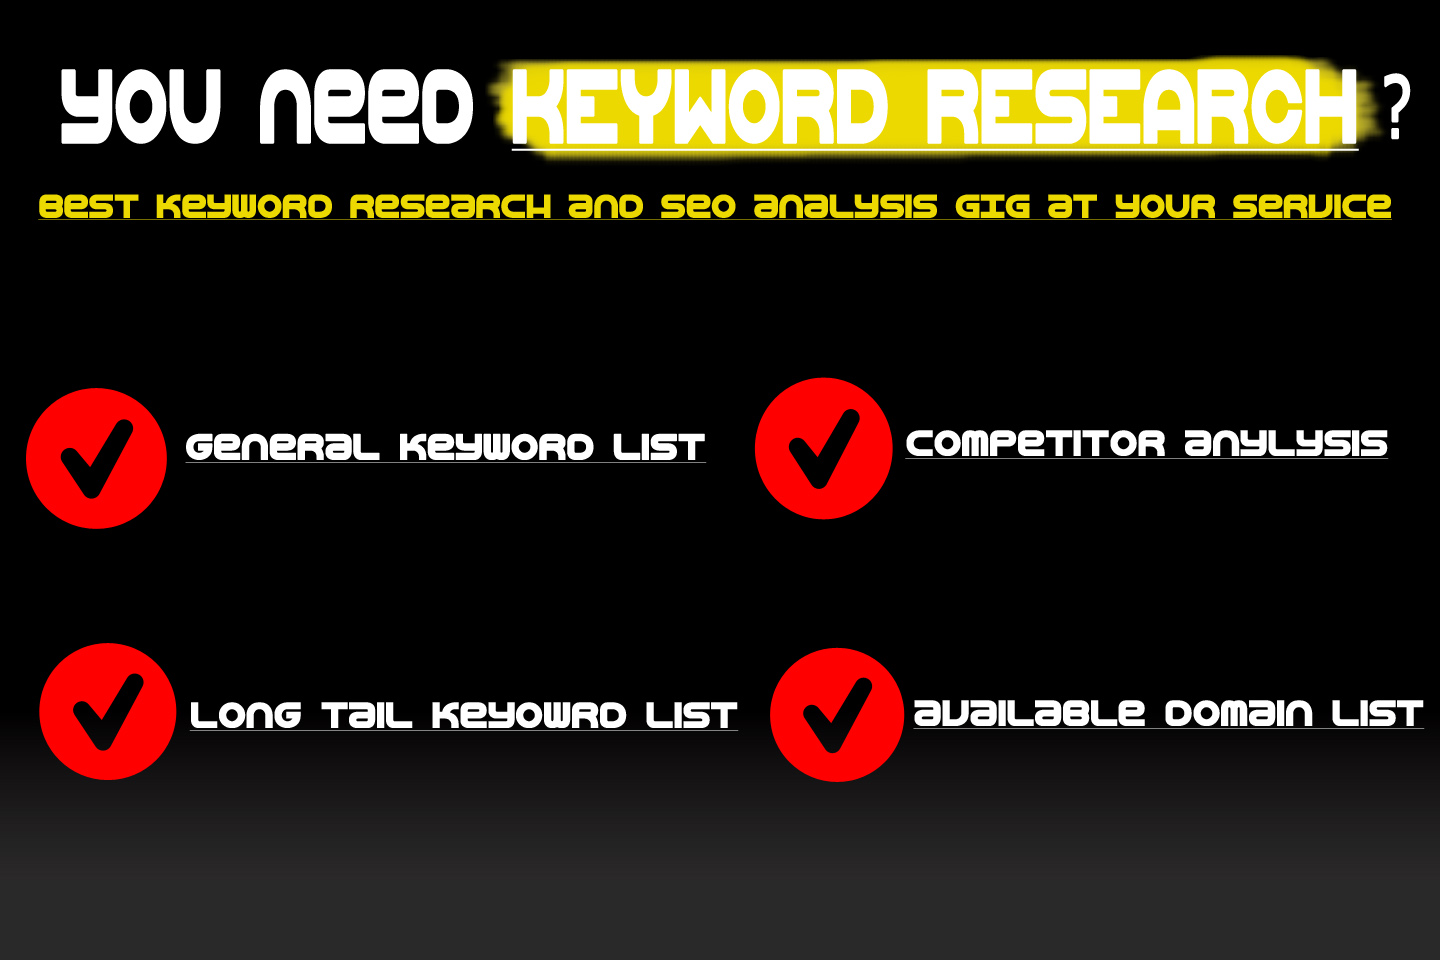 indepth KEYWORD research,  seo analysis and domain research